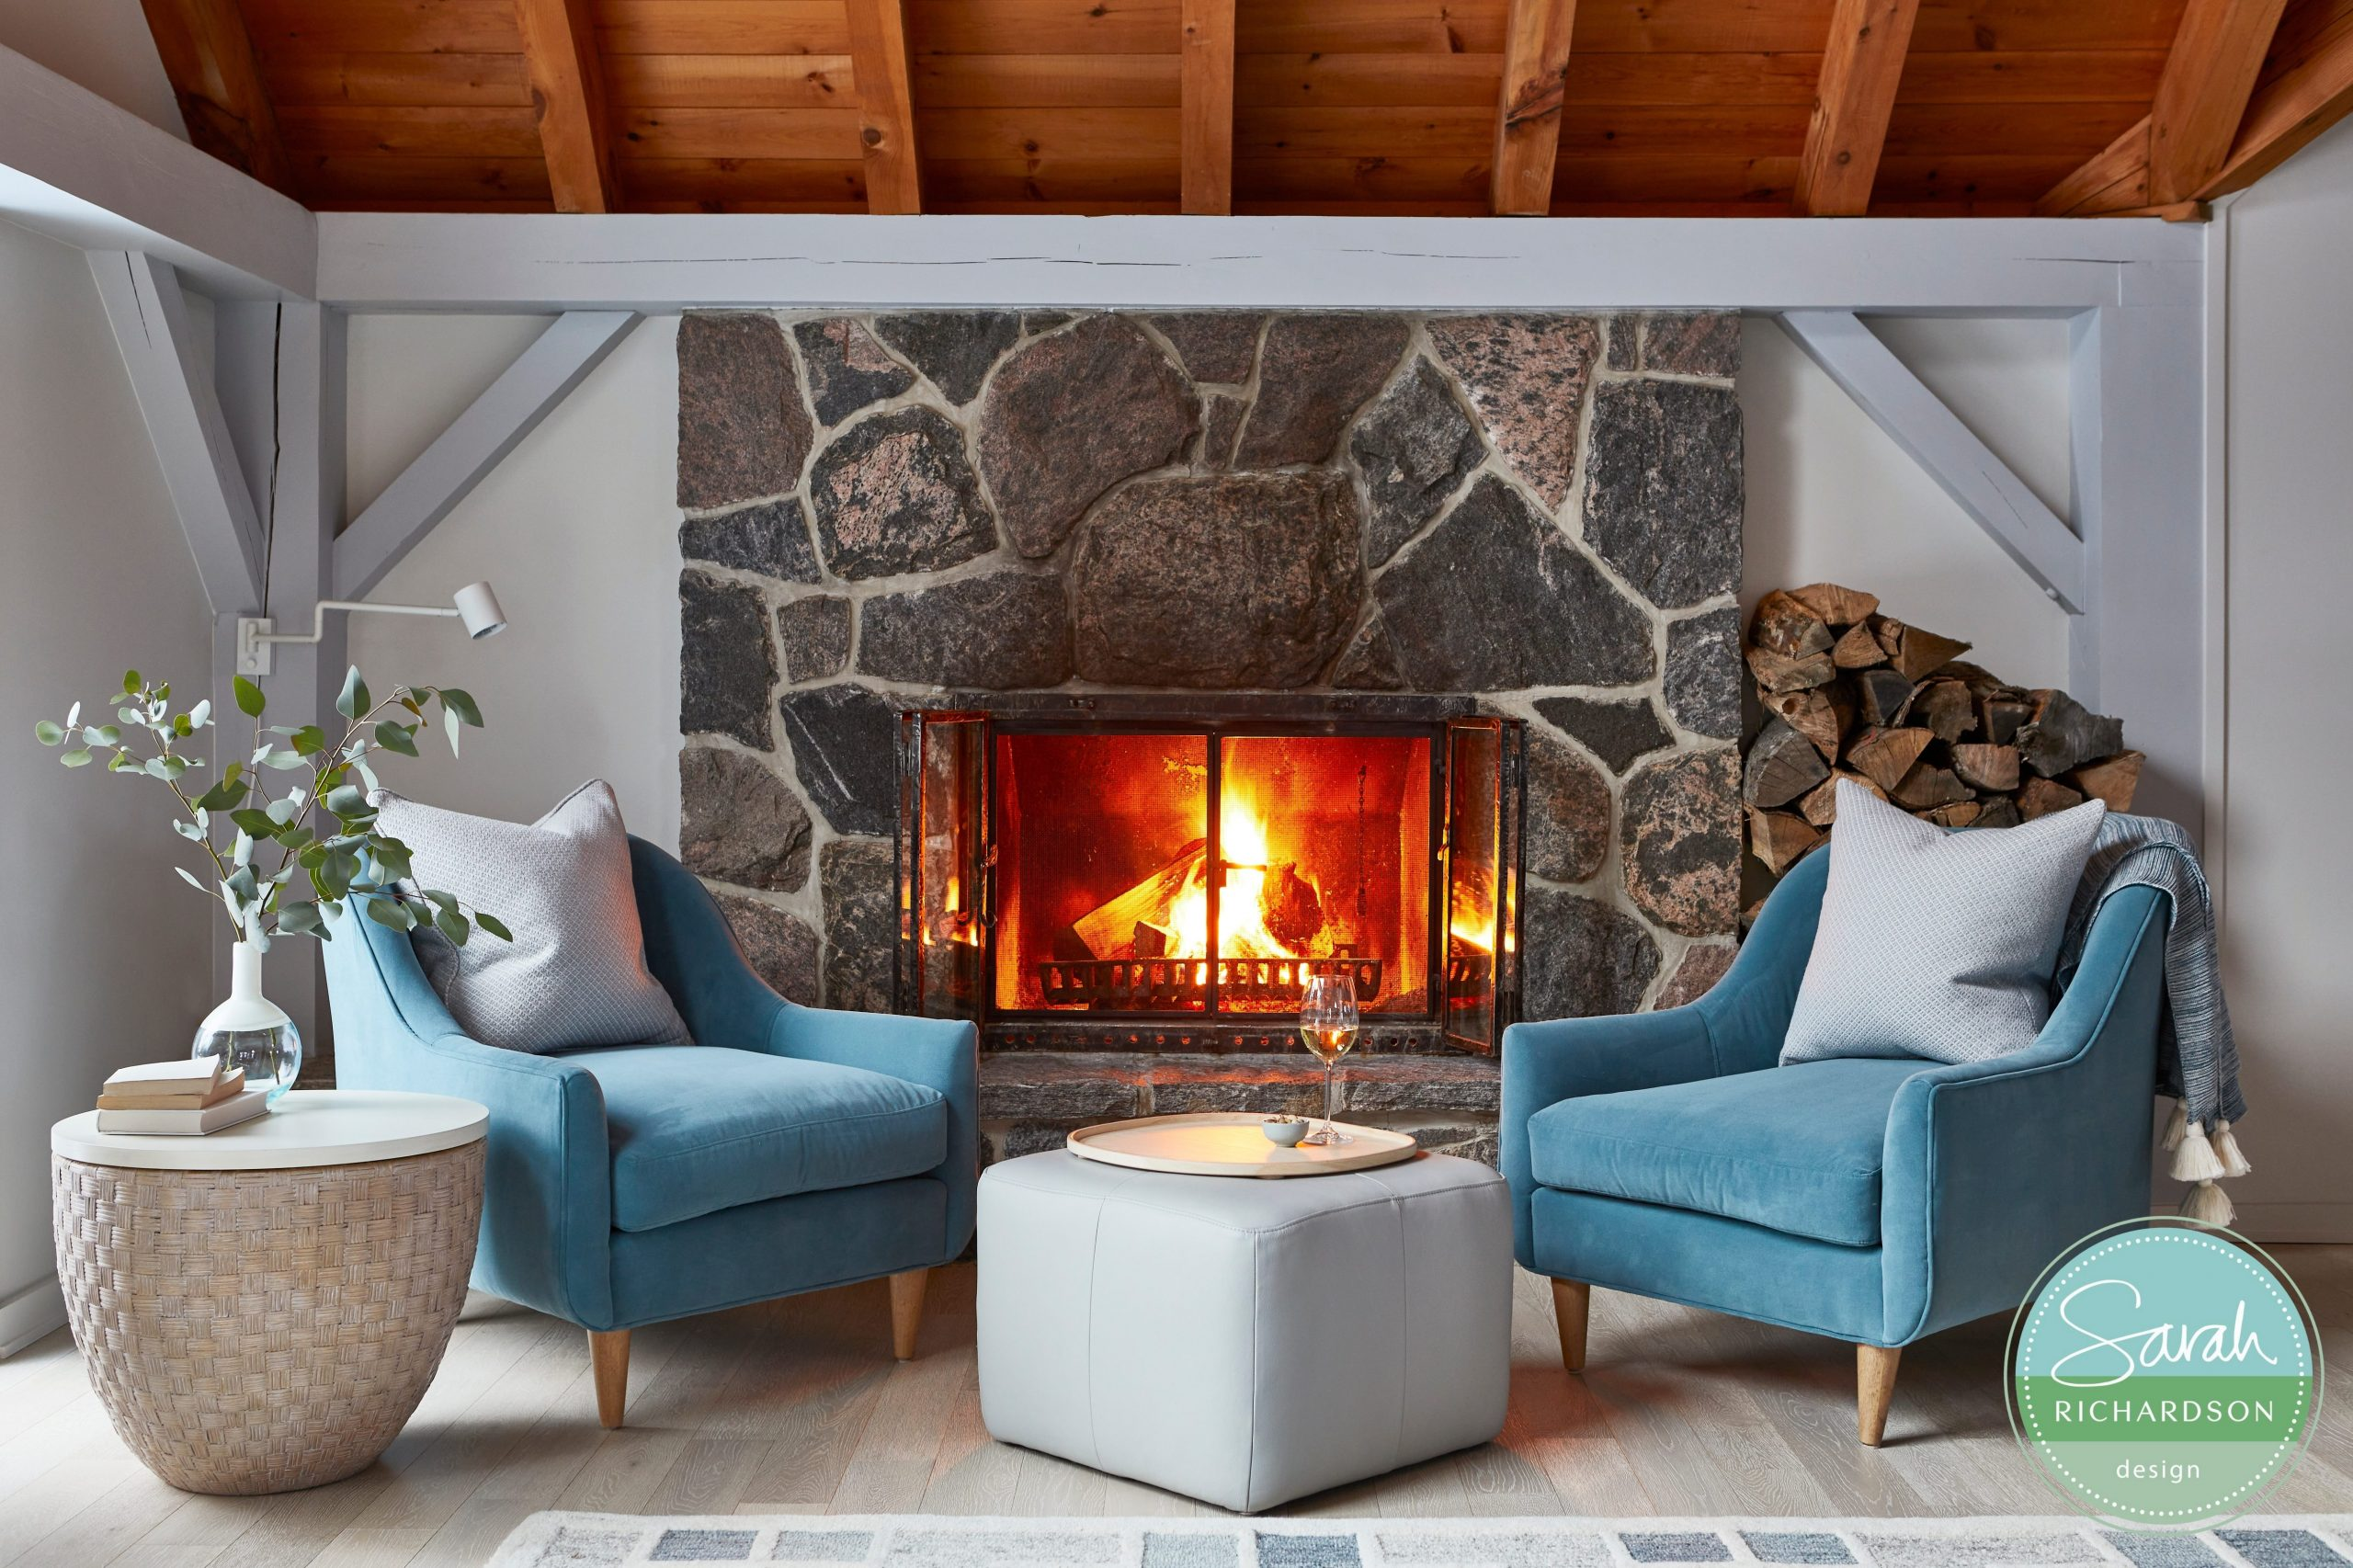 Normerica Timber Frames, Sarah Richardson Design, Living Room, Fireplace, Cathedral Ceiling, Painted Timbers, Natural Timbers